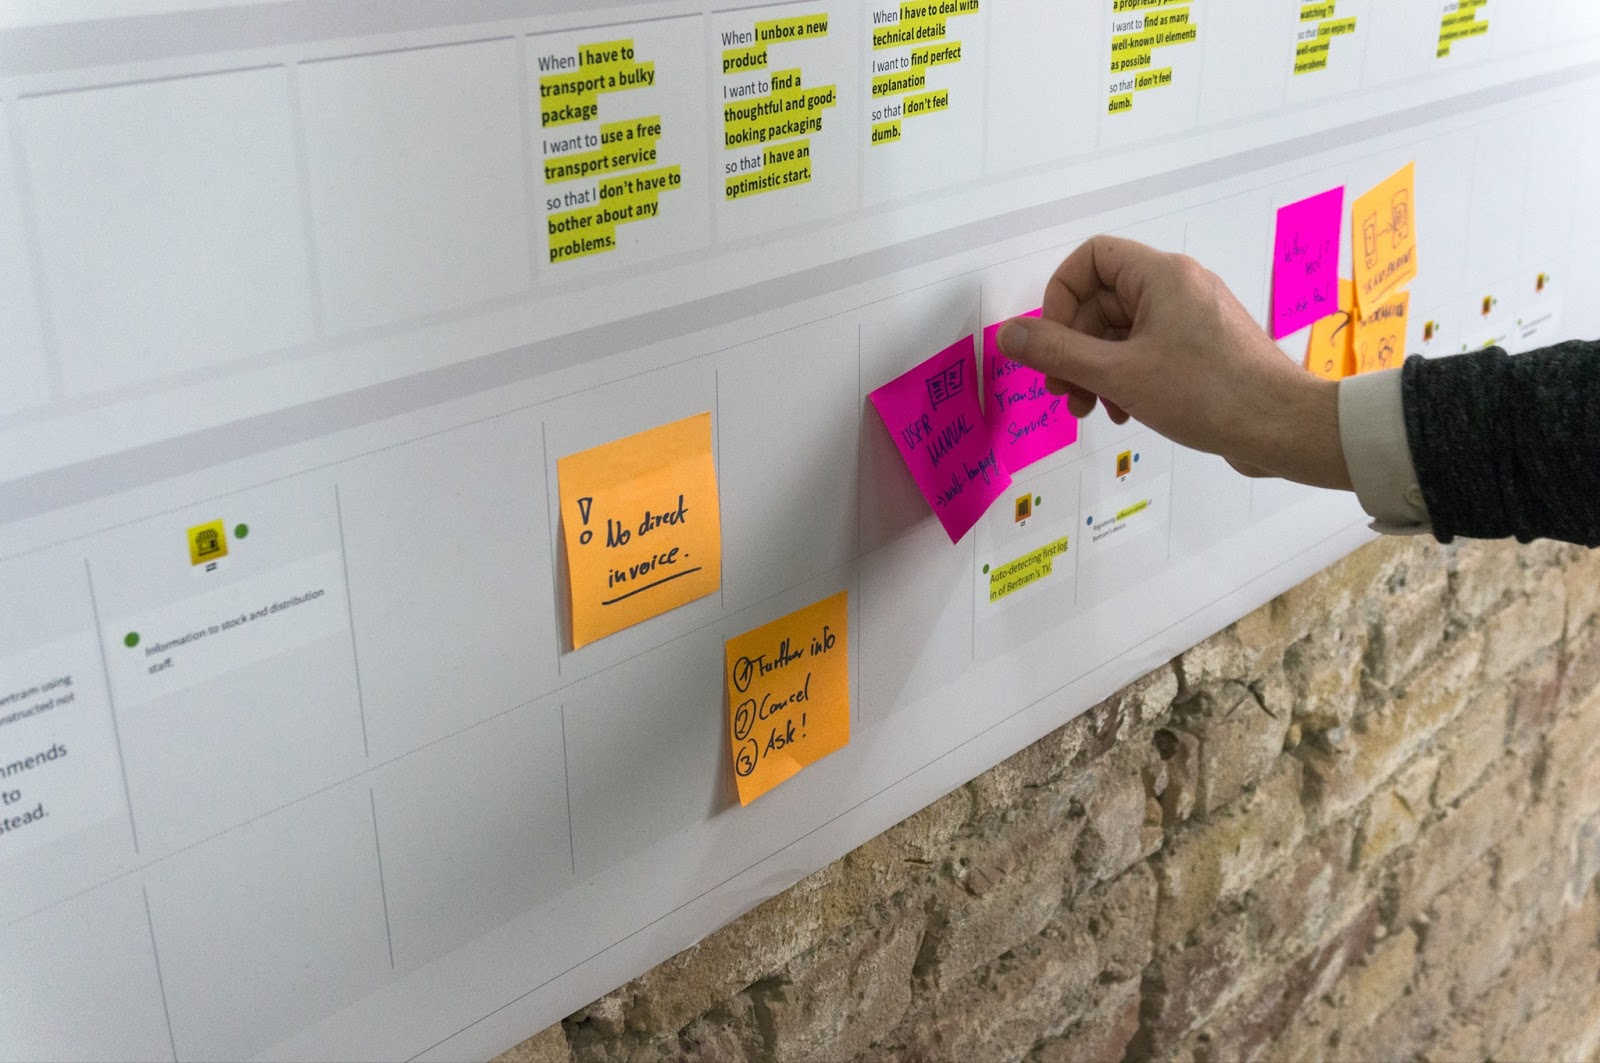 A brick wall with a large journey map hanged on the wall. Sticky notes are being put on it.